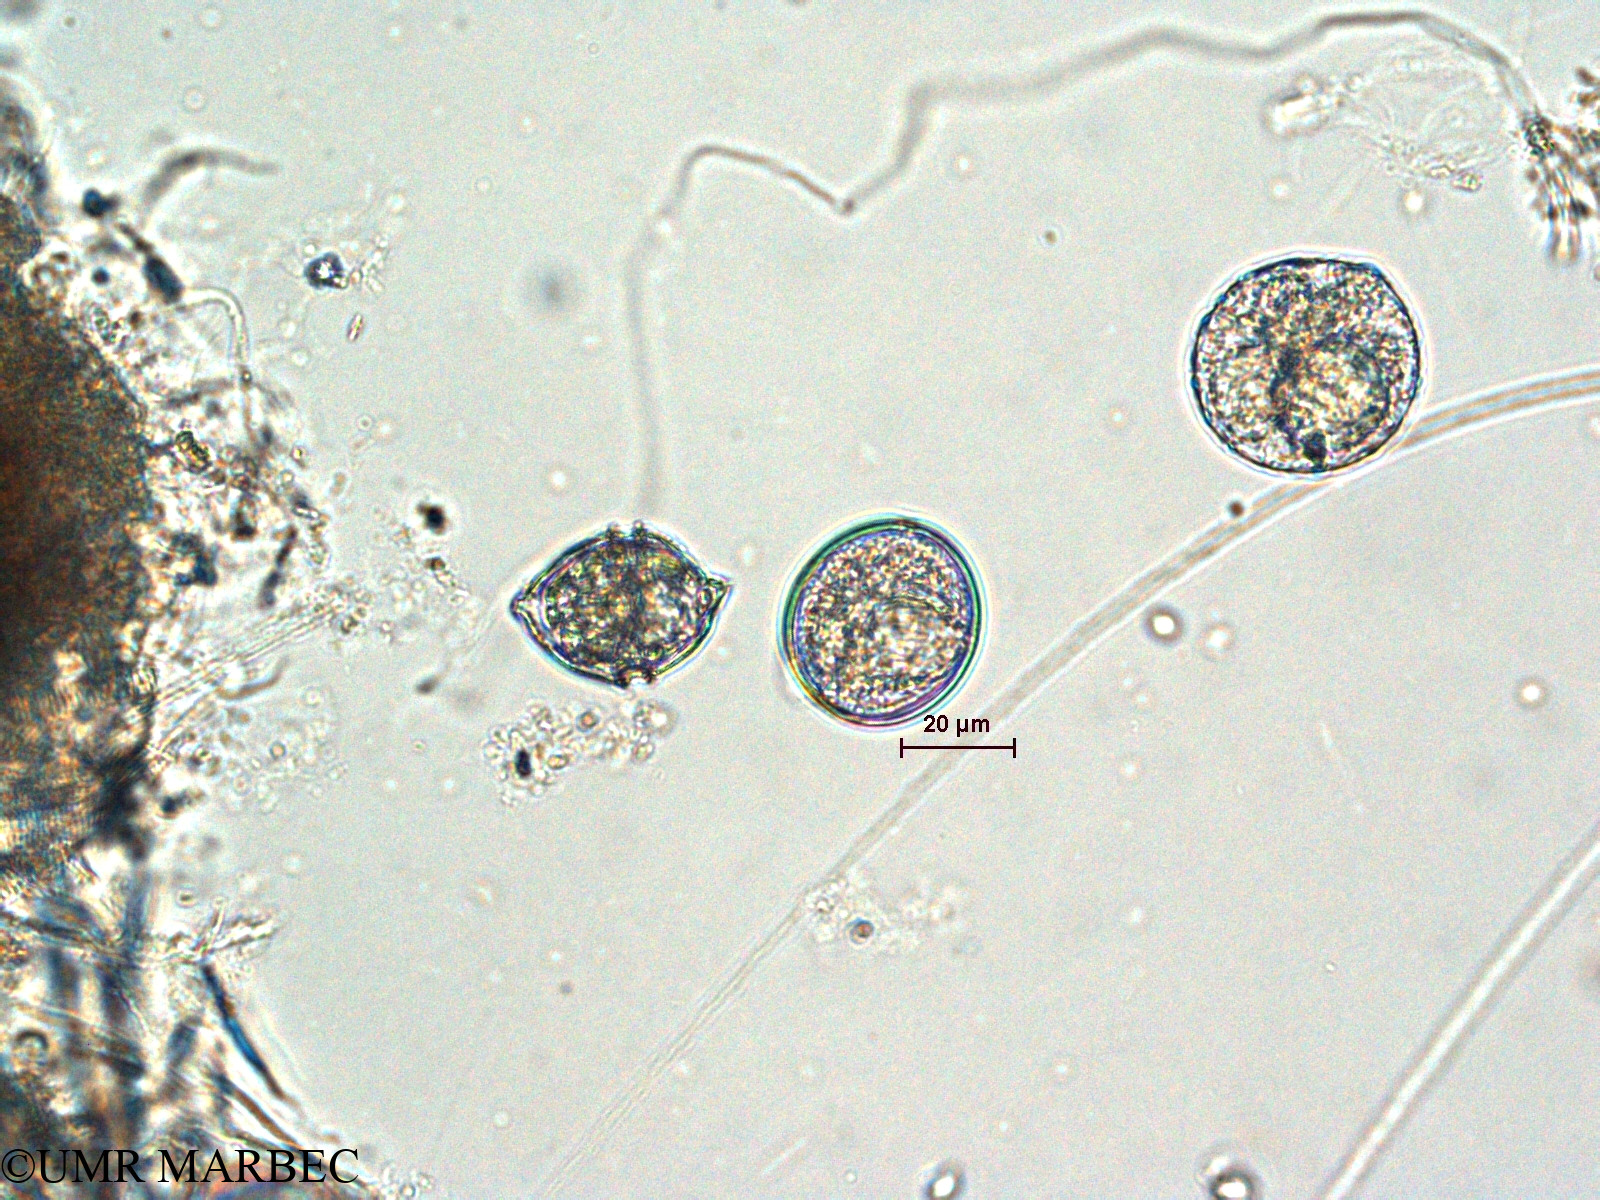 phyto/Scattered_Islands/all/COMMA April 2011/Amphidoma nucula (ancienHeterocapsa triquetra- H. Heterocapsa sp1 > Amphidoma sp2)(copy).jpg